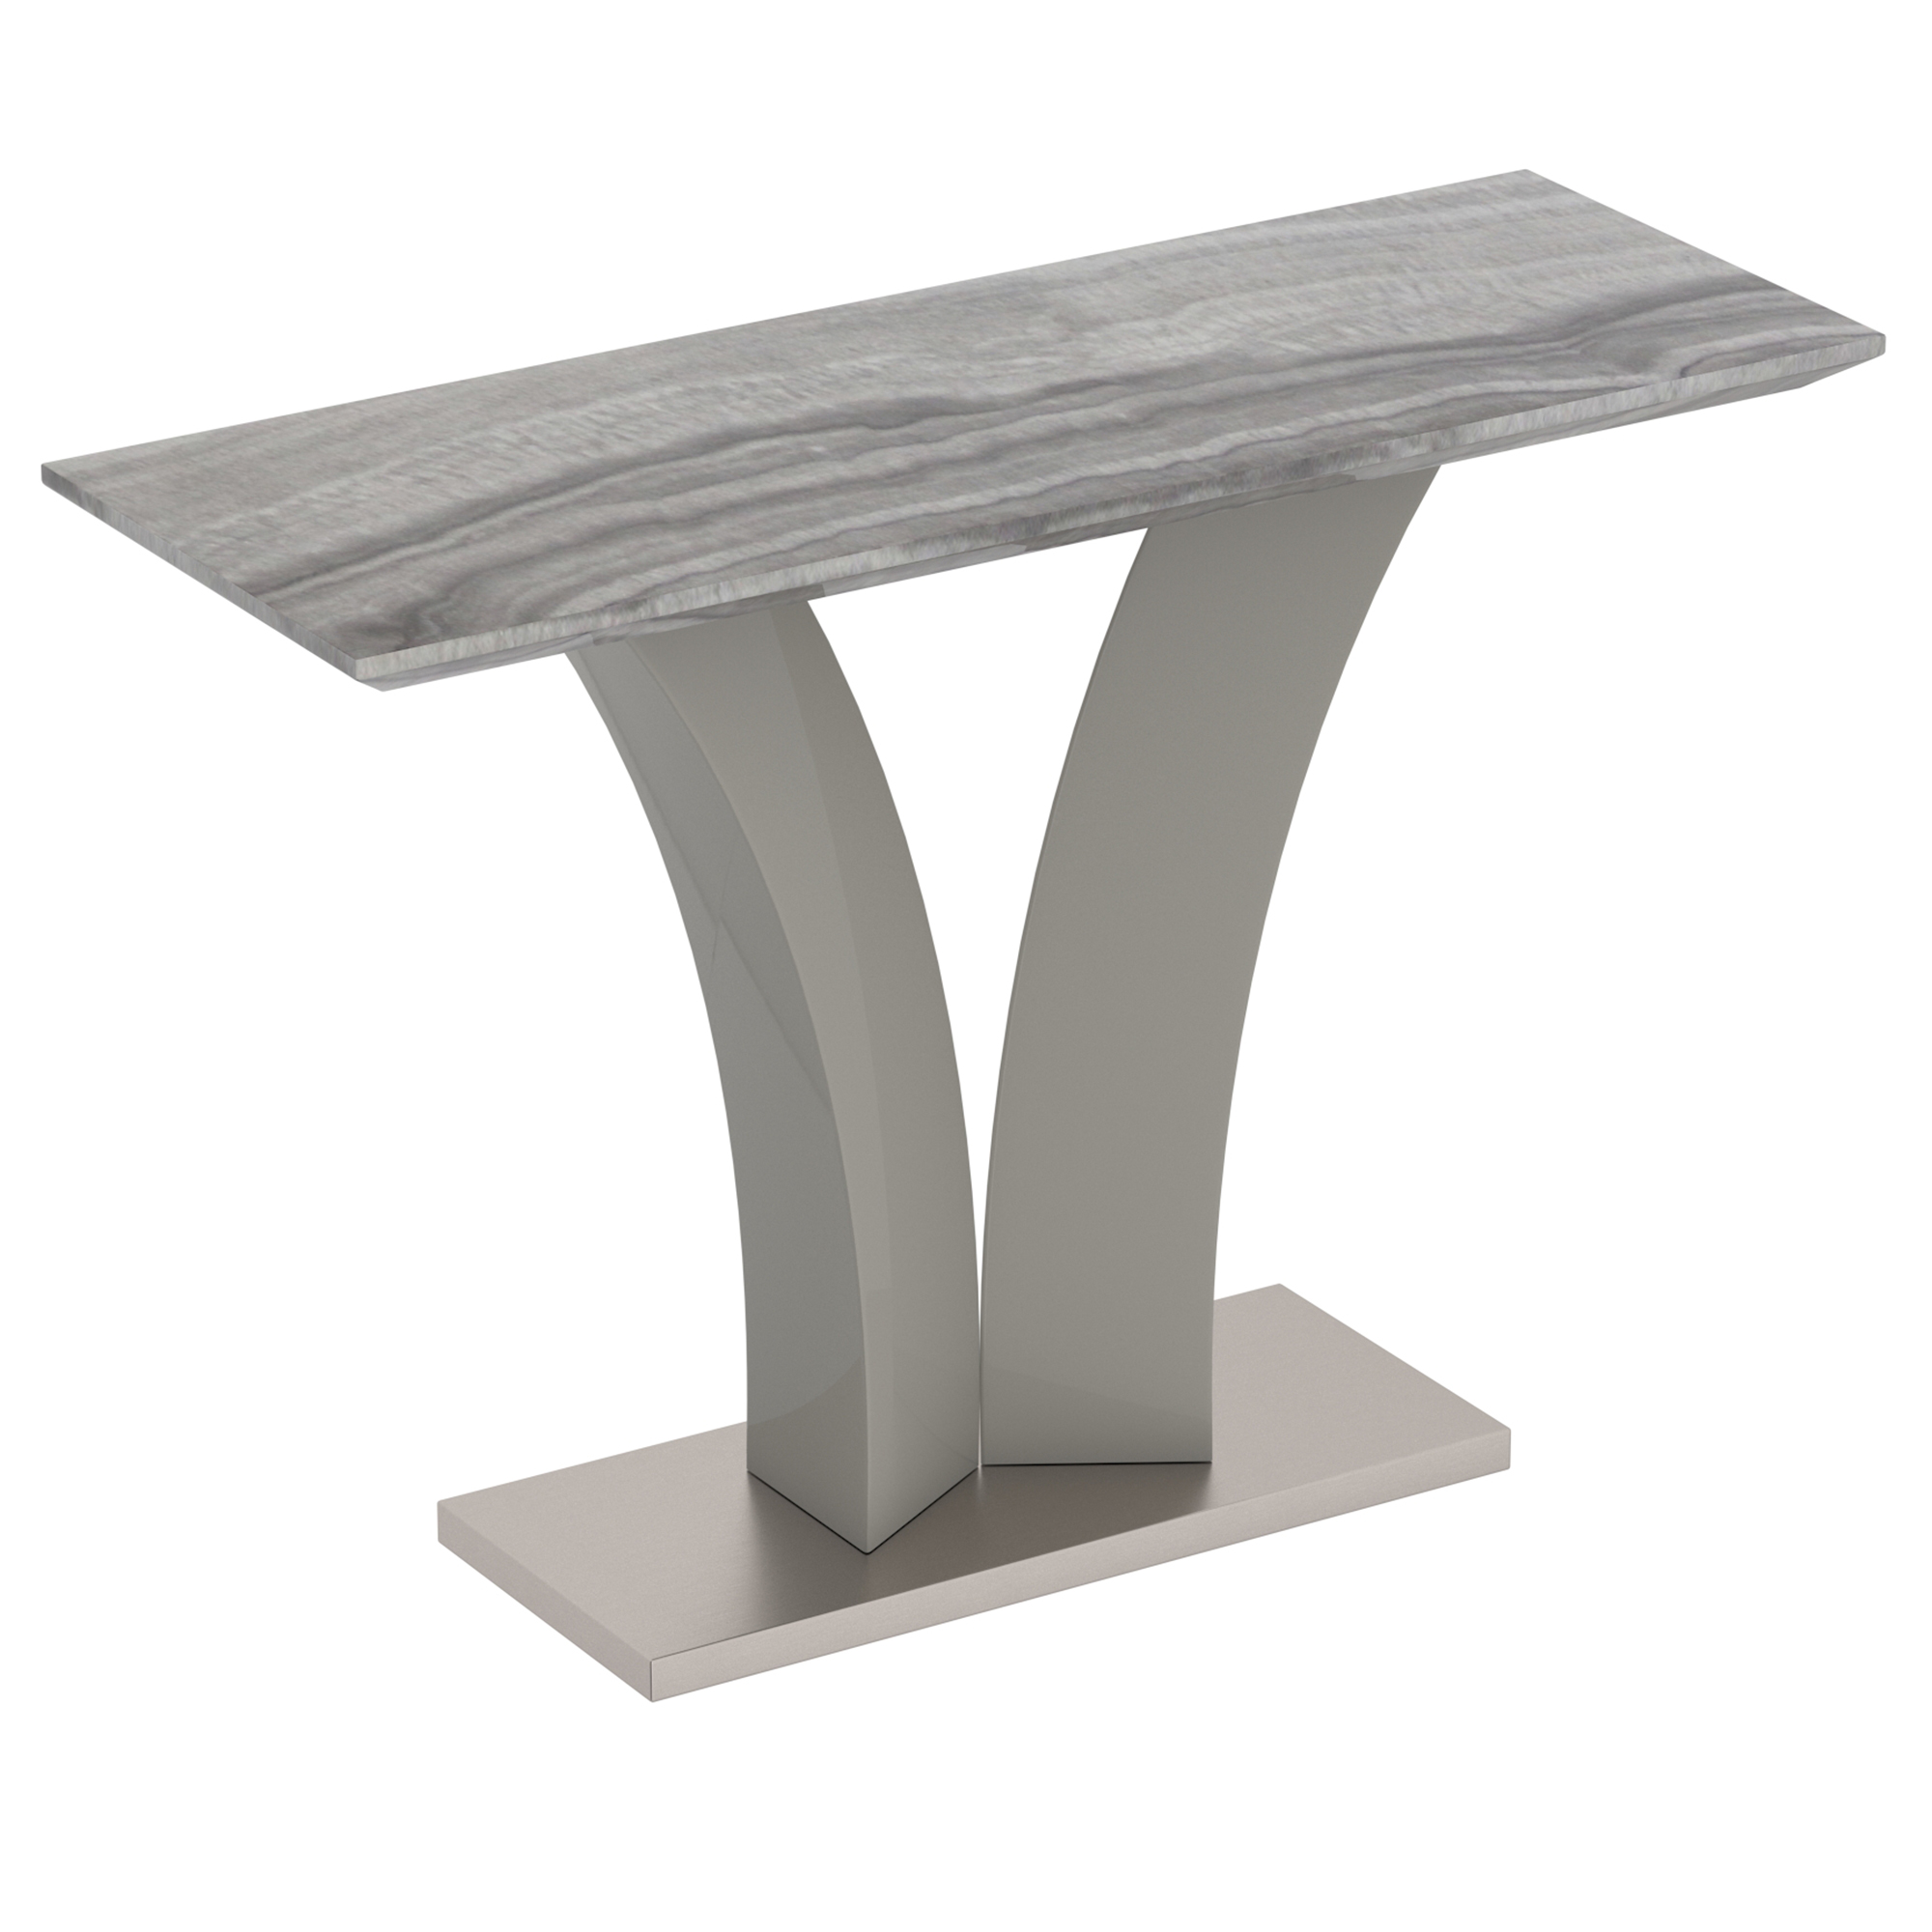 Contemporary Faux Marble & Stainless Steel Console Table in Grey